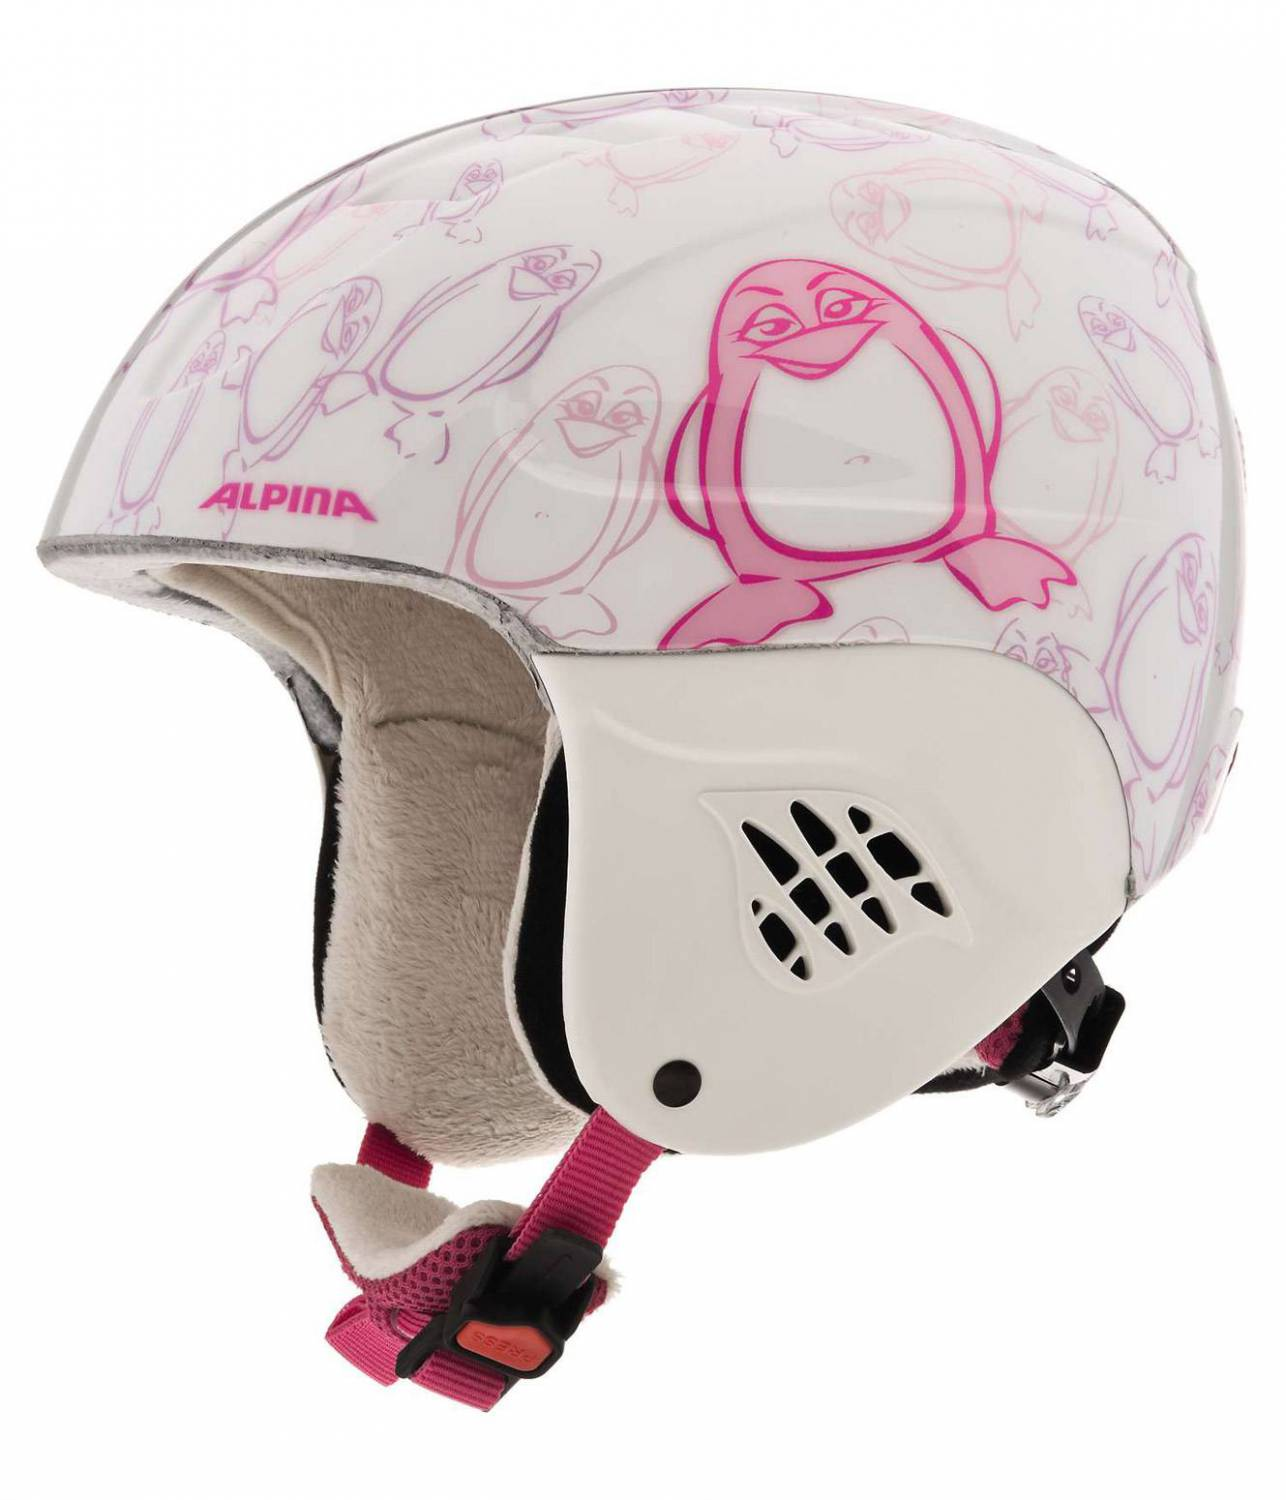 Alpina Carat Kinder Skihelm (Größe 48 52 cm, 56 happy pinguin)